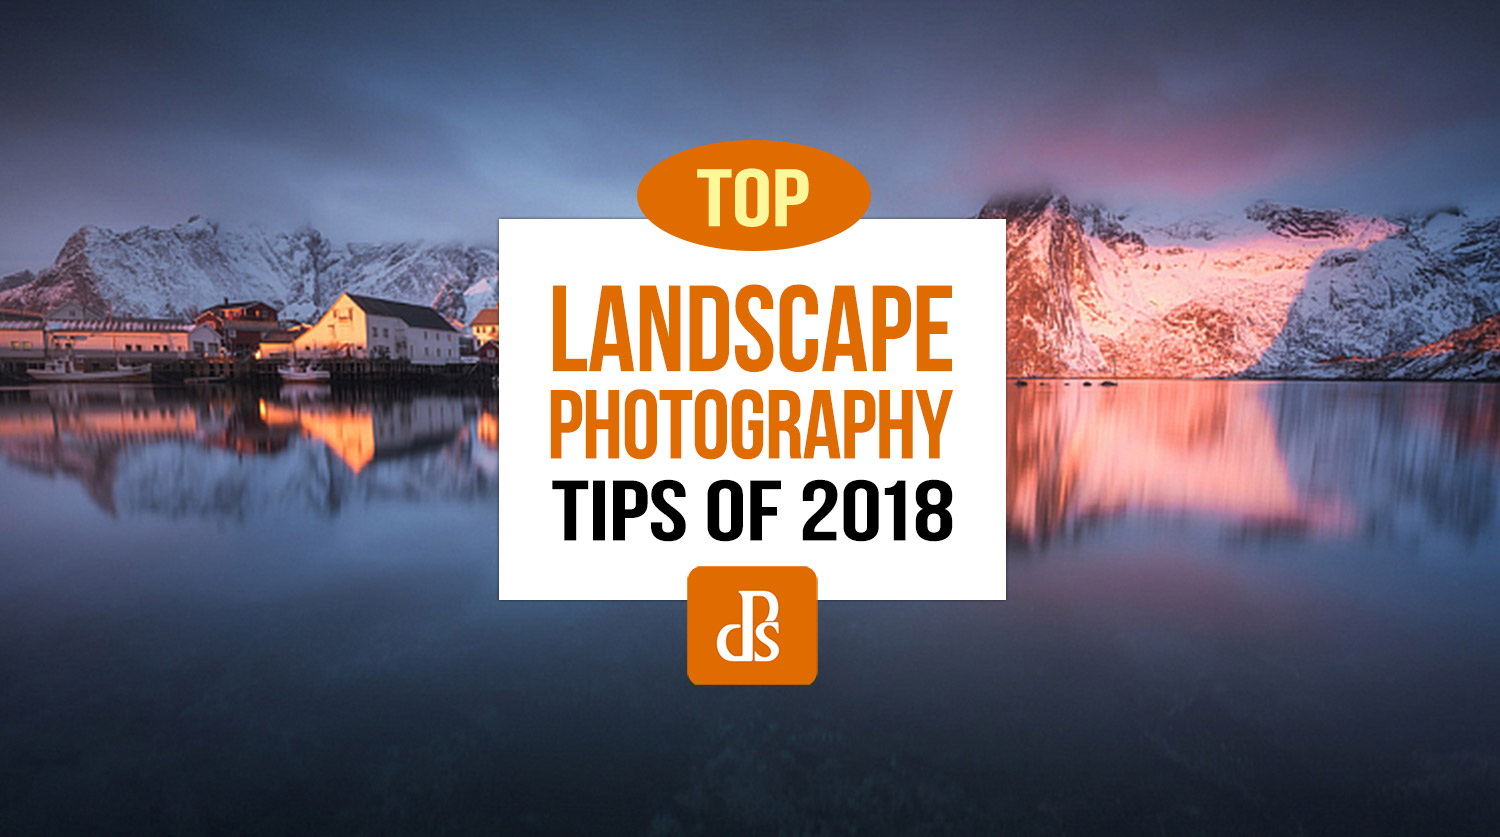 https://i0.wp.com/digital-photography-school.com/wp-content/uploads/2018/12/dps-top-landscape-photography-tips-2018.jpg?resize=1500%2C837&ssl=1